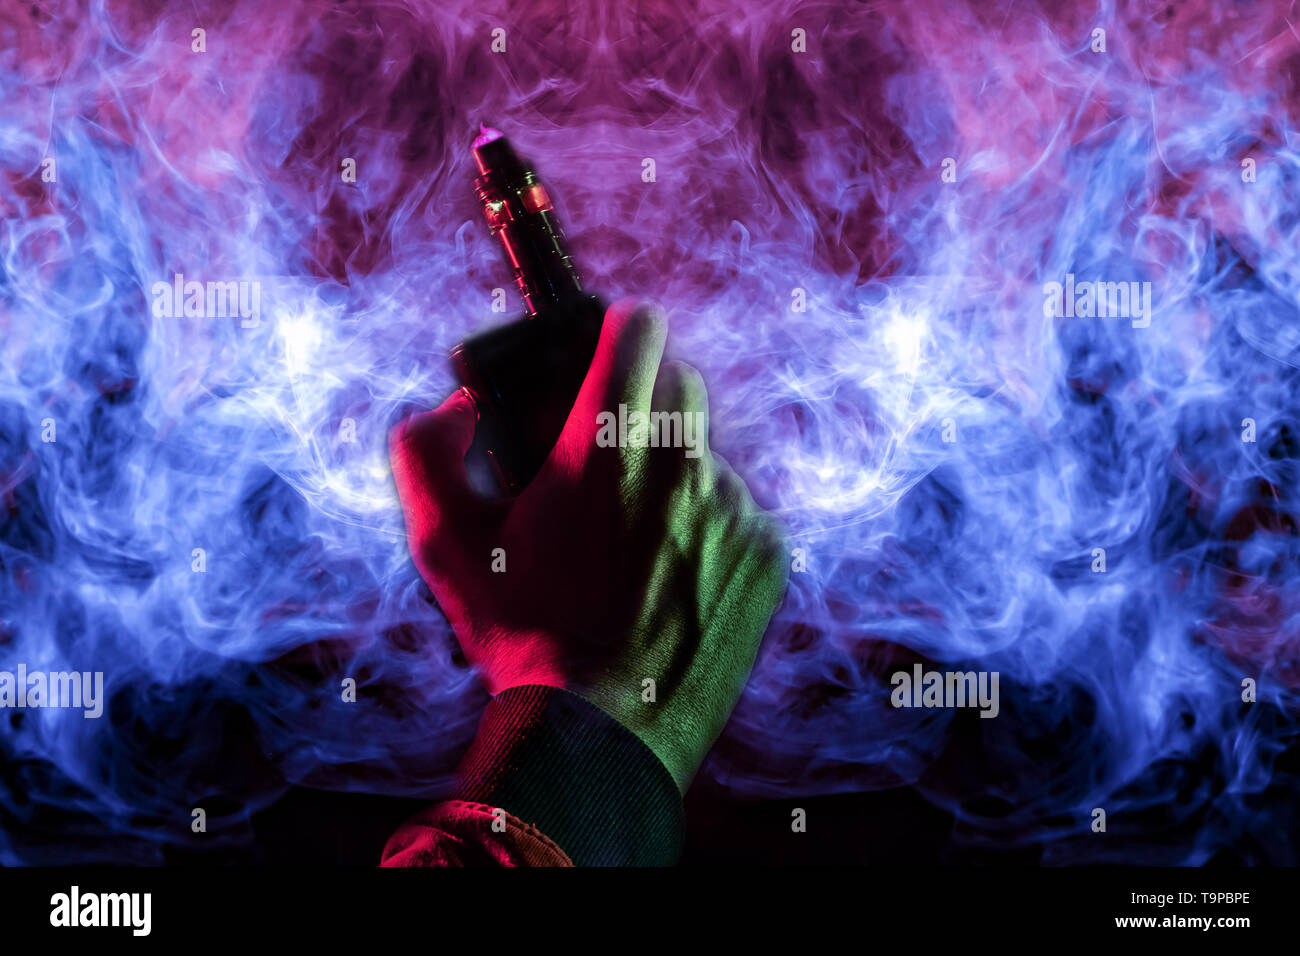 A man body part arm and hand view with green light in a orange hoodie smokes a vape and exhales a red smoke on bright blue and pink wavy background. H - Stock Image